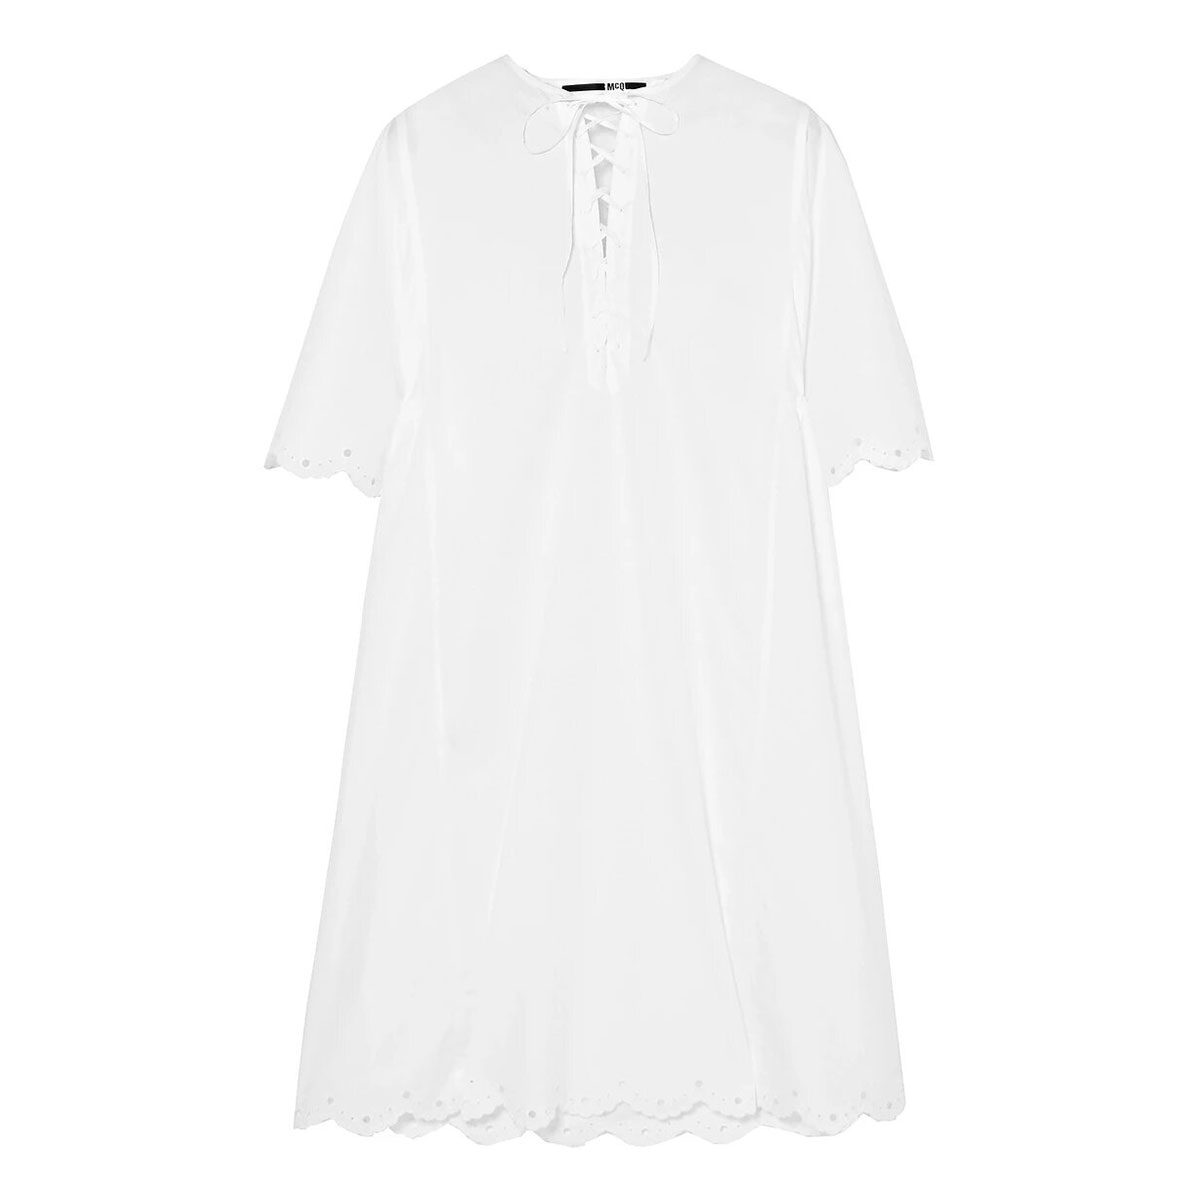 McQ Alexander McQueen Lace-up Dress